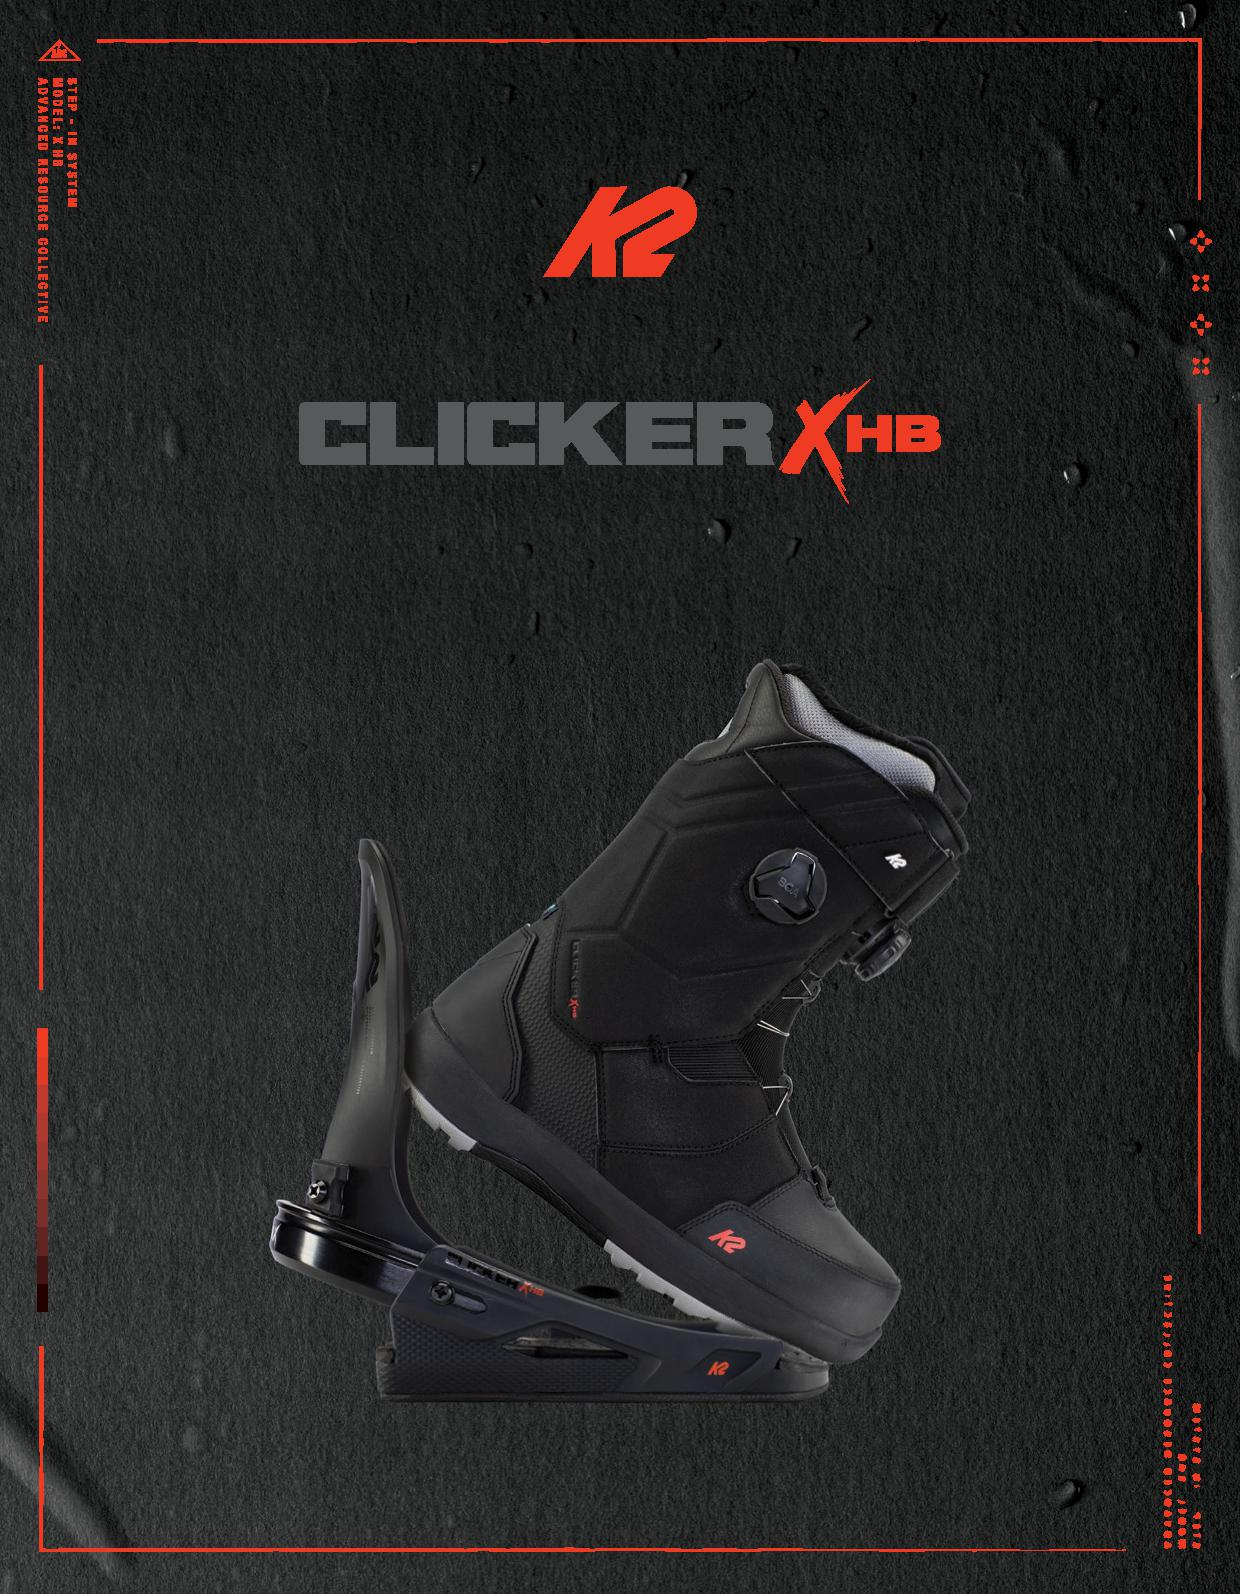 104 K2 snowboard boots and snowboard bindings